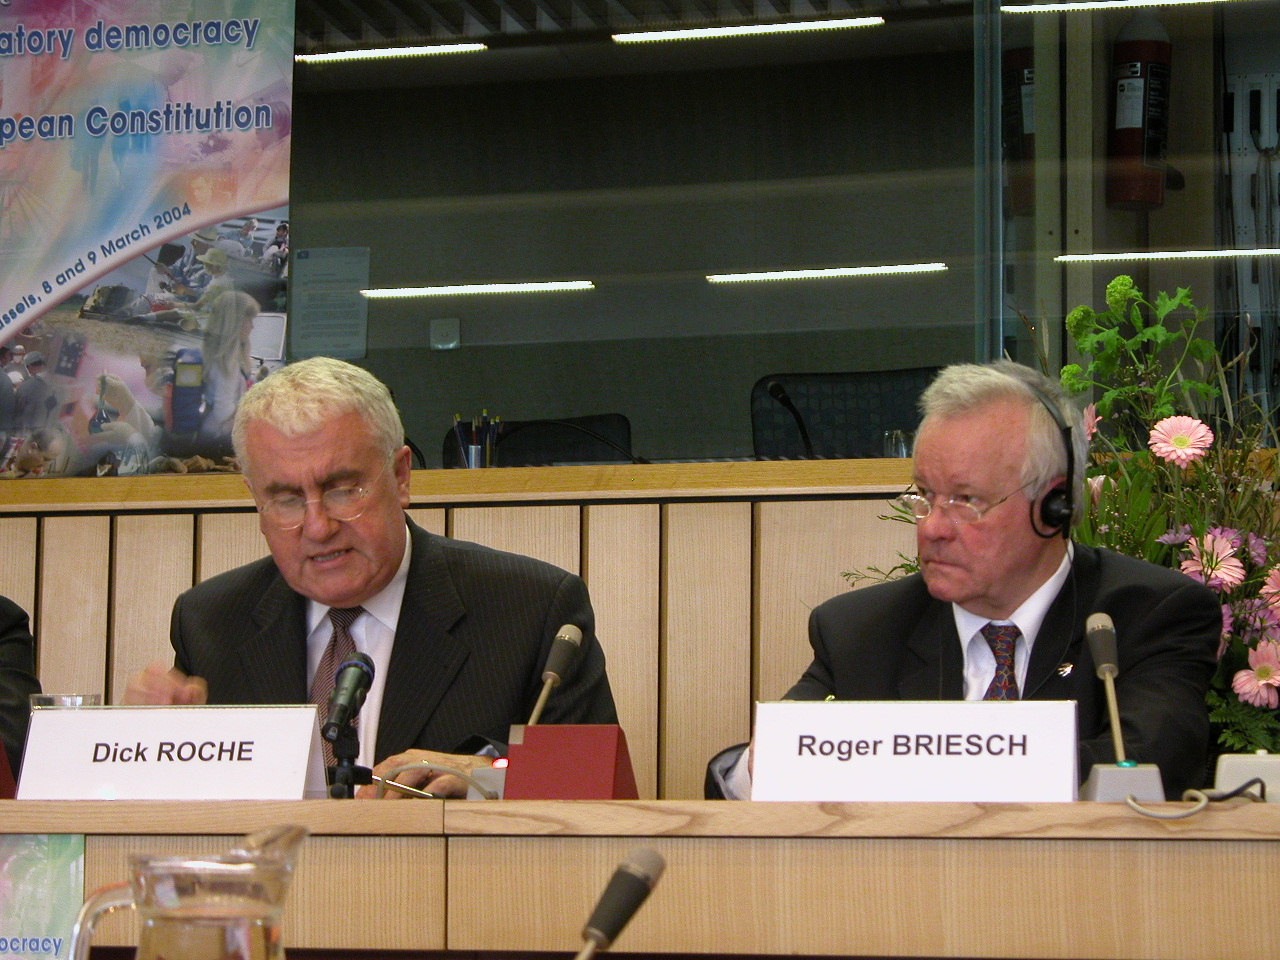 Mr Dick ROCHE T.D., Irish Minister of State for European Affairs and Mr Roger Briesch, President of the EESC